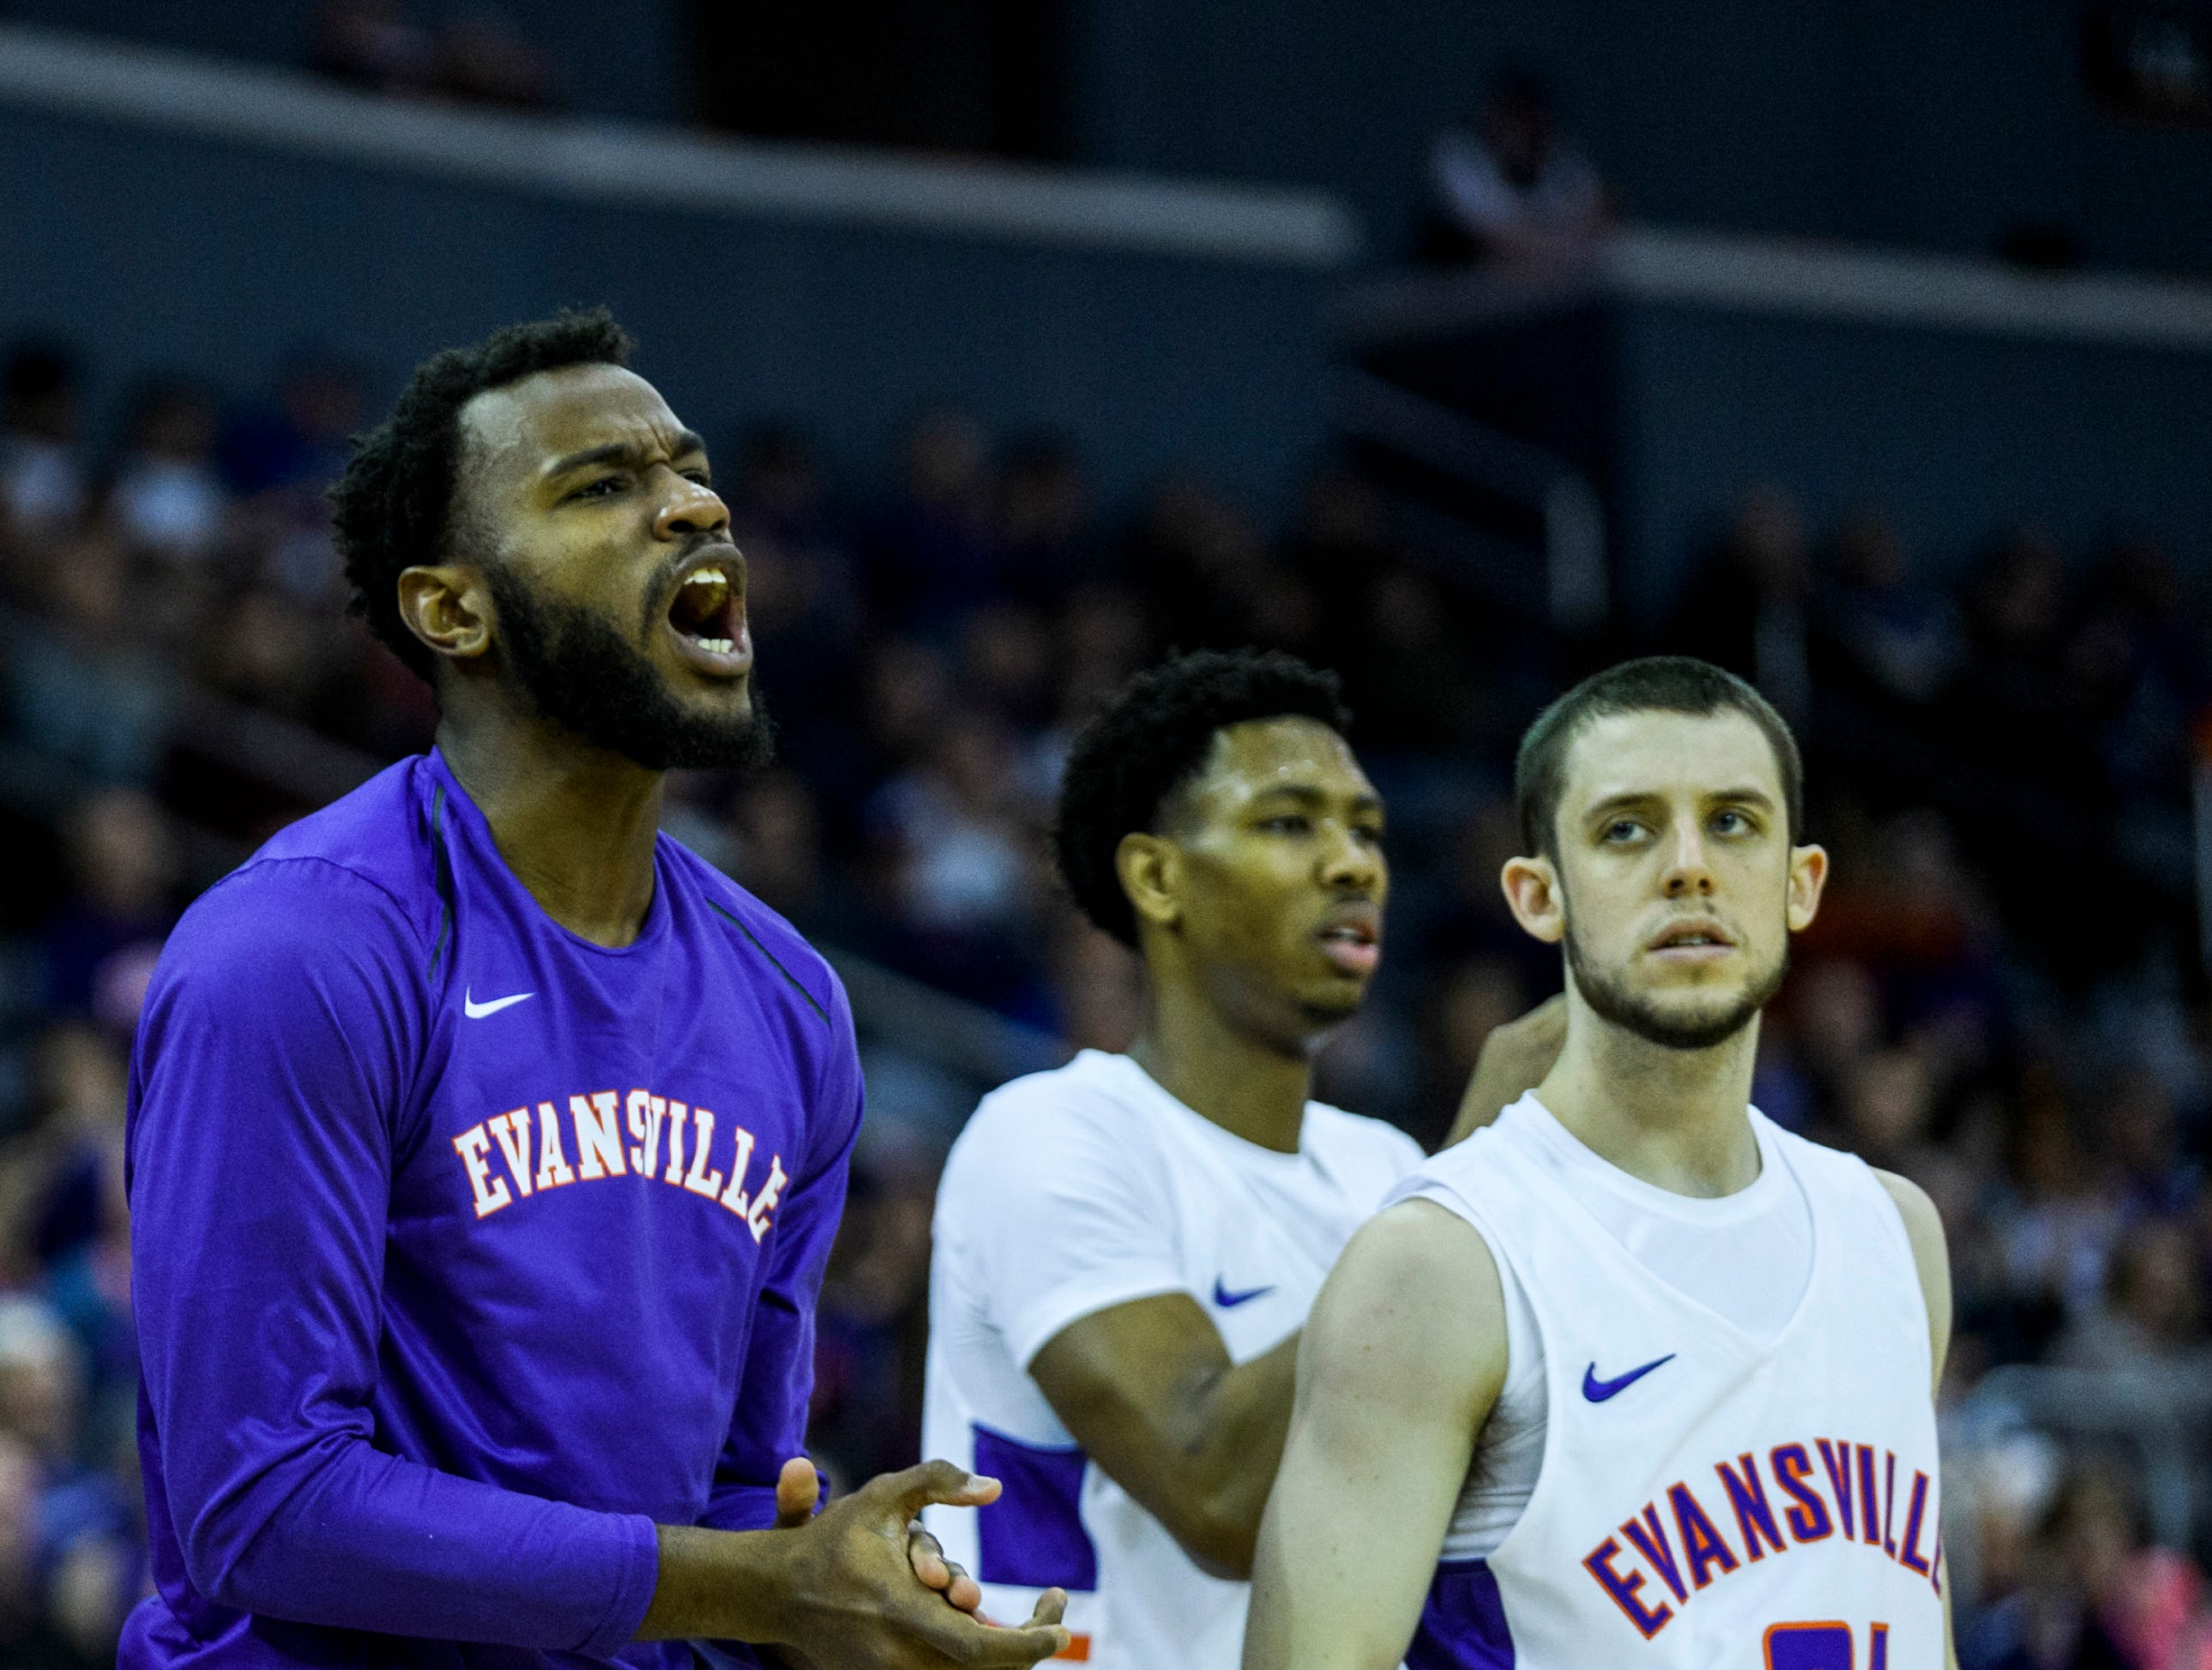 University of Evansville's John Hall (35), Marty Hill (1) and Shea Feehan (21) watch their team take on the University of Northern Iowa Panthers at Ford Center in Evansville, Ind., Sunday, Feb. 17, 2019. The Purple Aces fell 73-58 to the University of Northern Iowa Panthers.